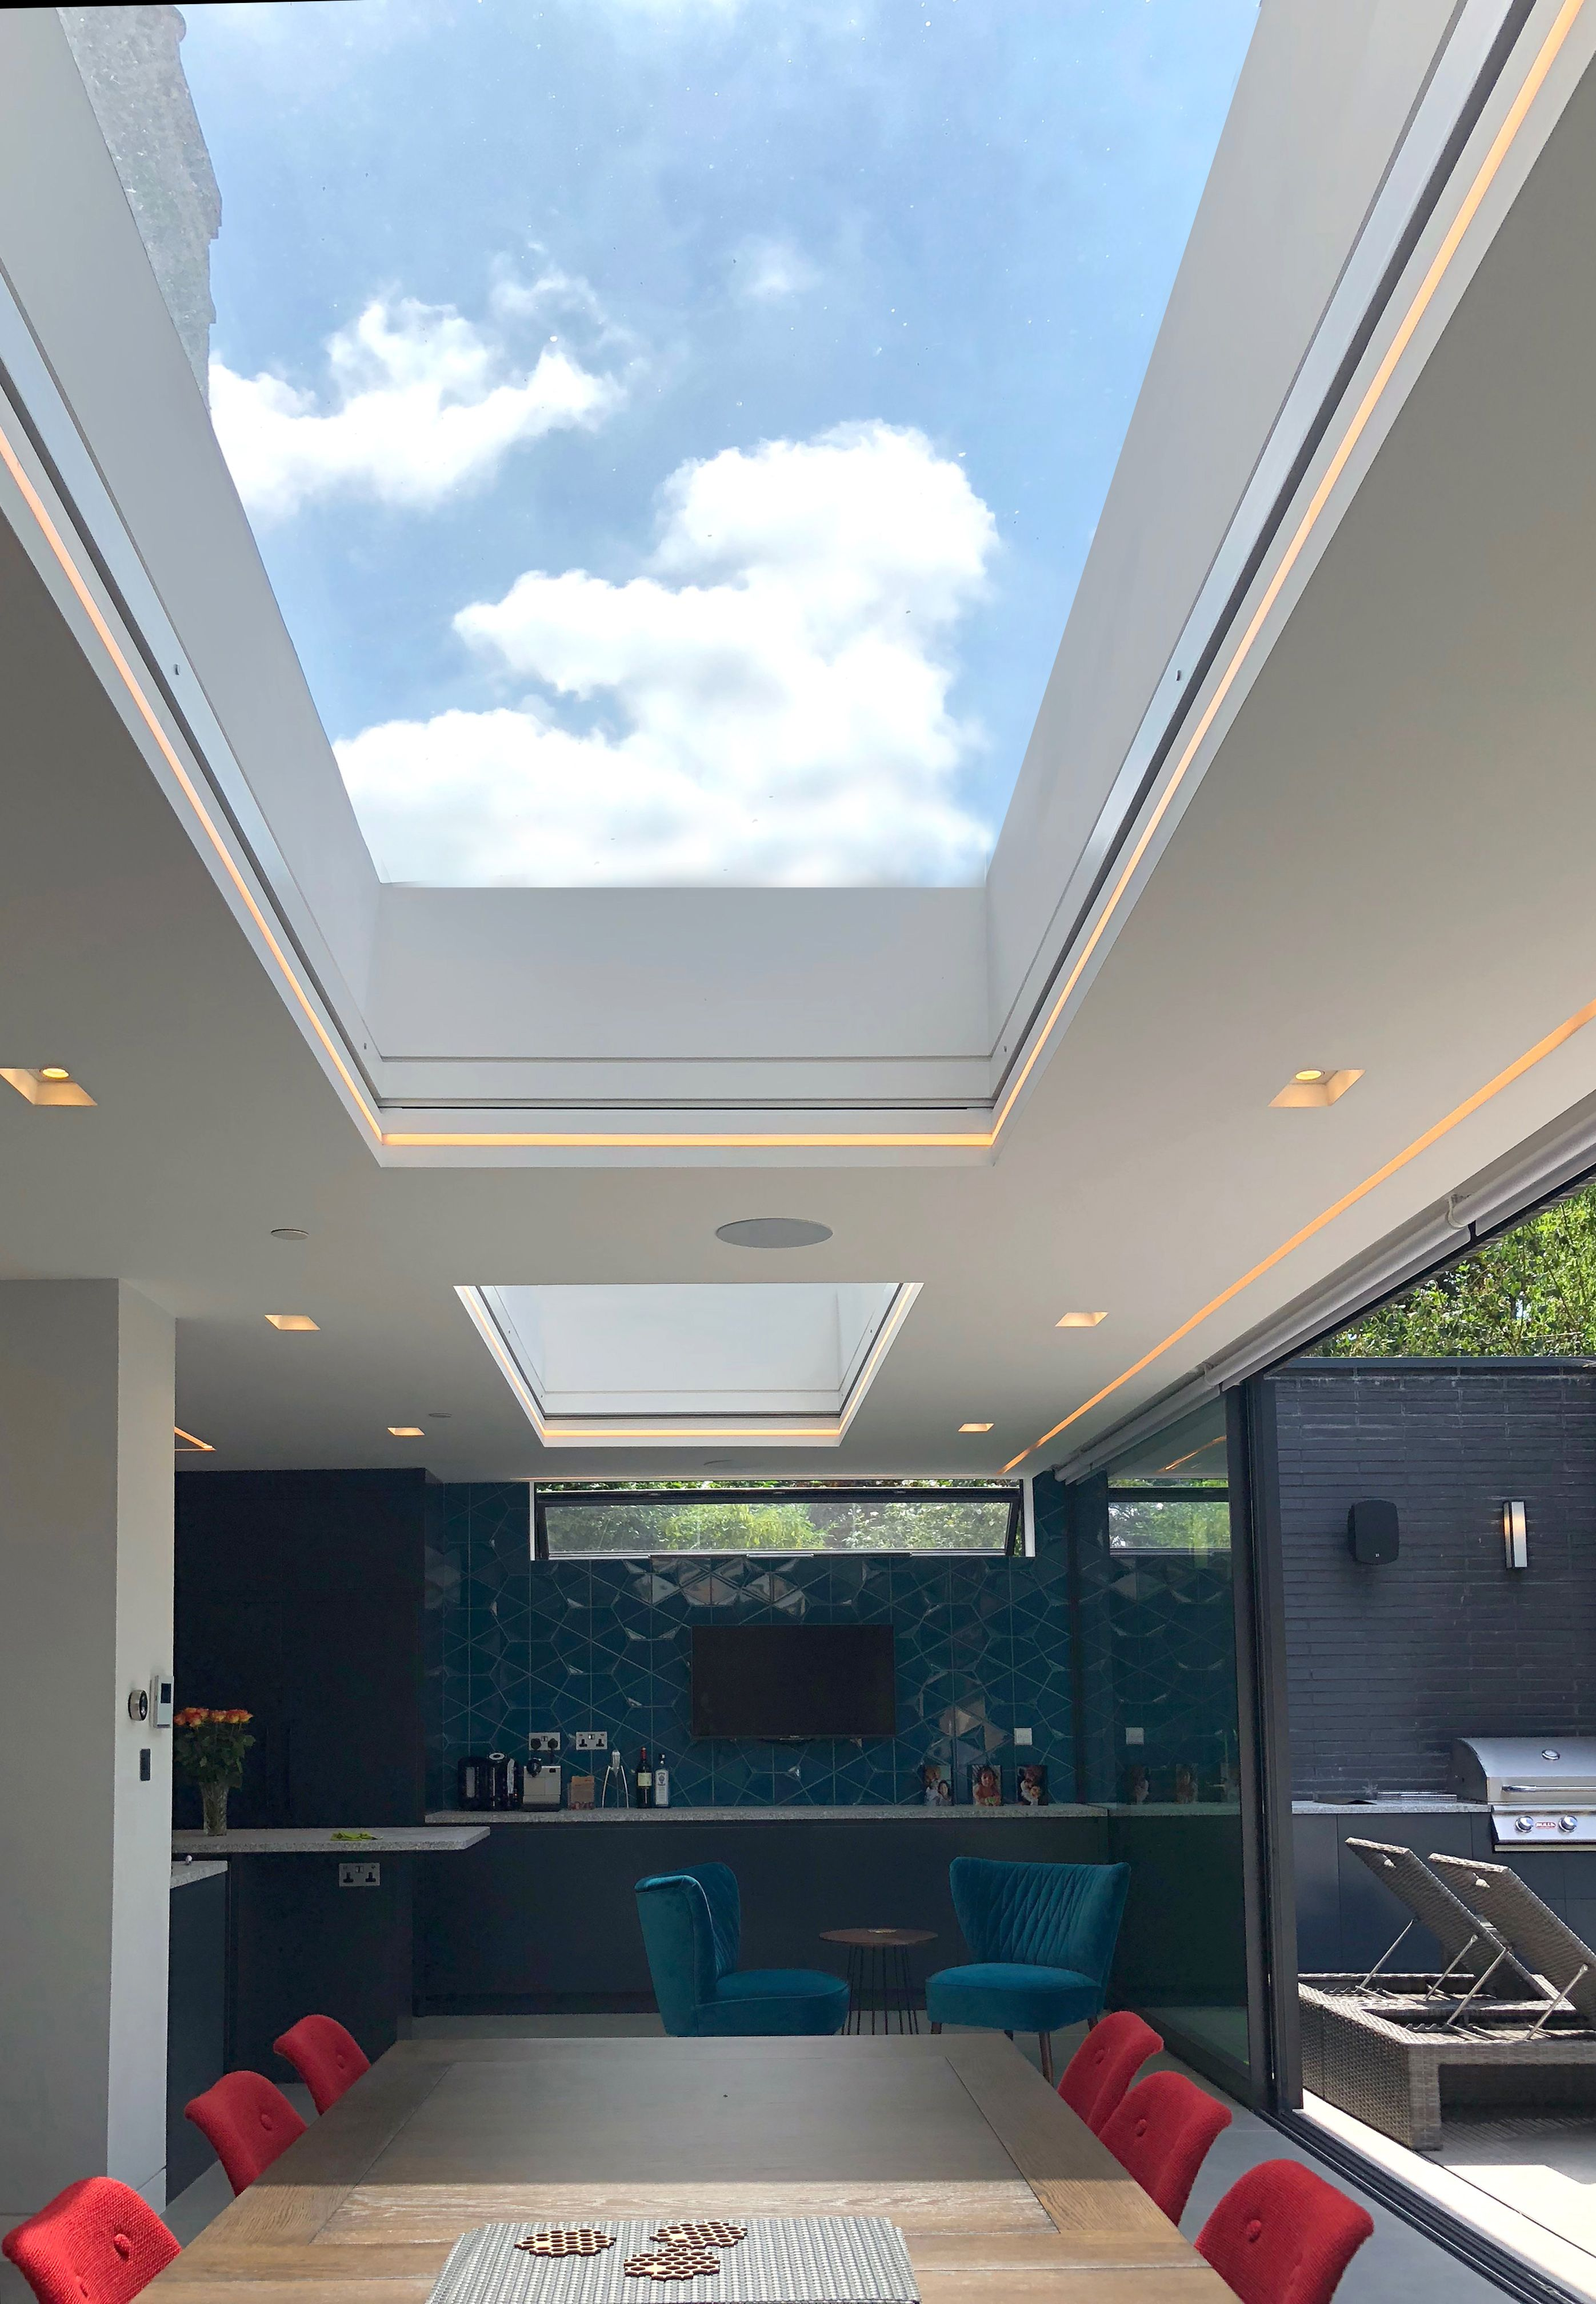 Elegant Light Living Space With Skylights To Allow Natural Light To Flood In Modern Led Lighting Has Been Used For Home Building Design Roof Design Skylight